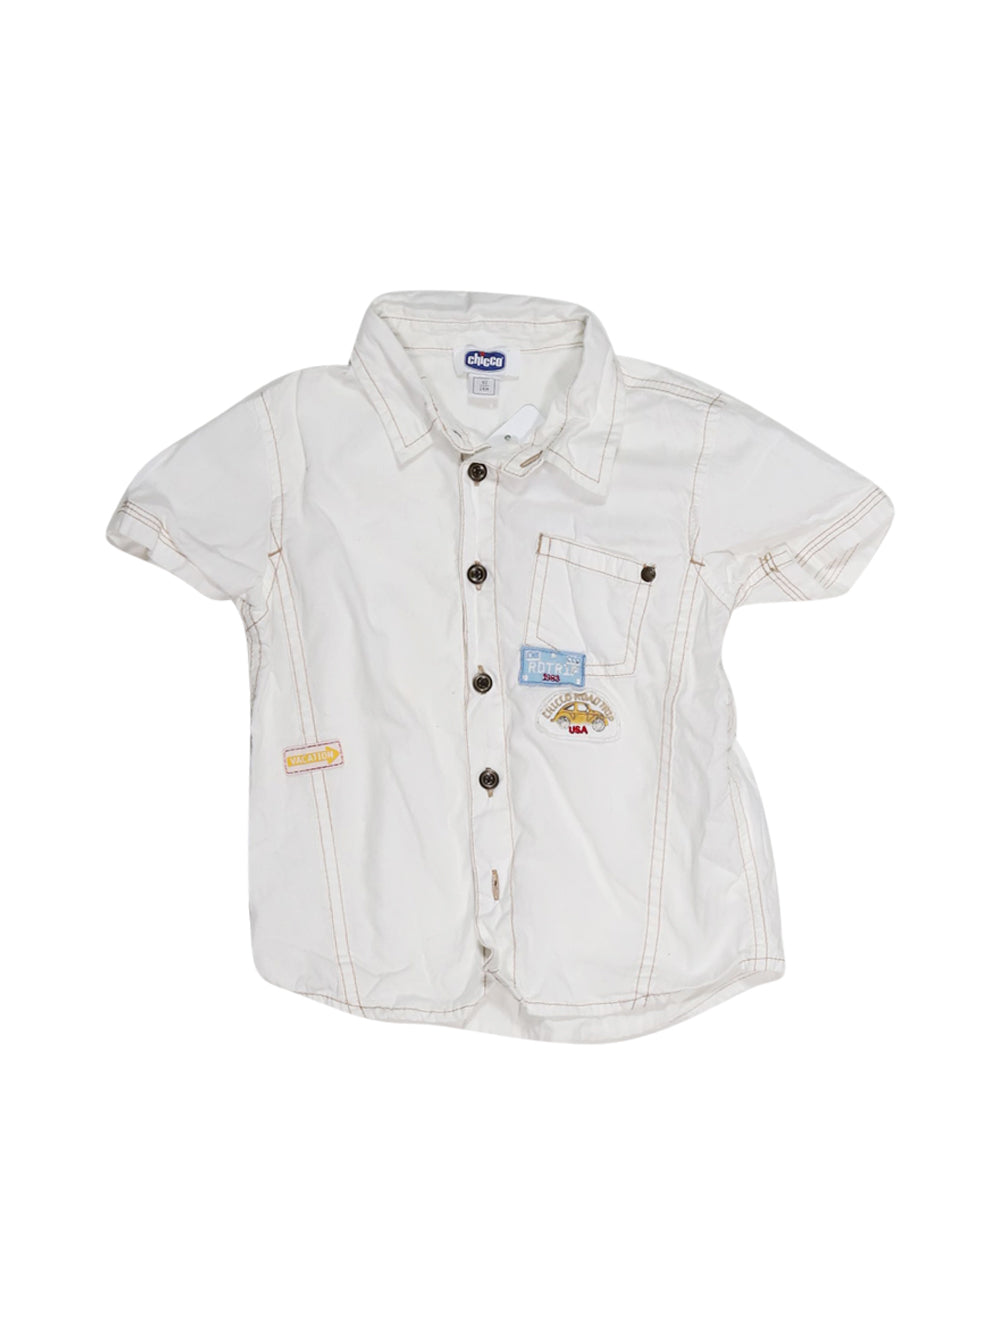 Front photo of Preloved Chicco White Boy's shirt - size 18-24 mths